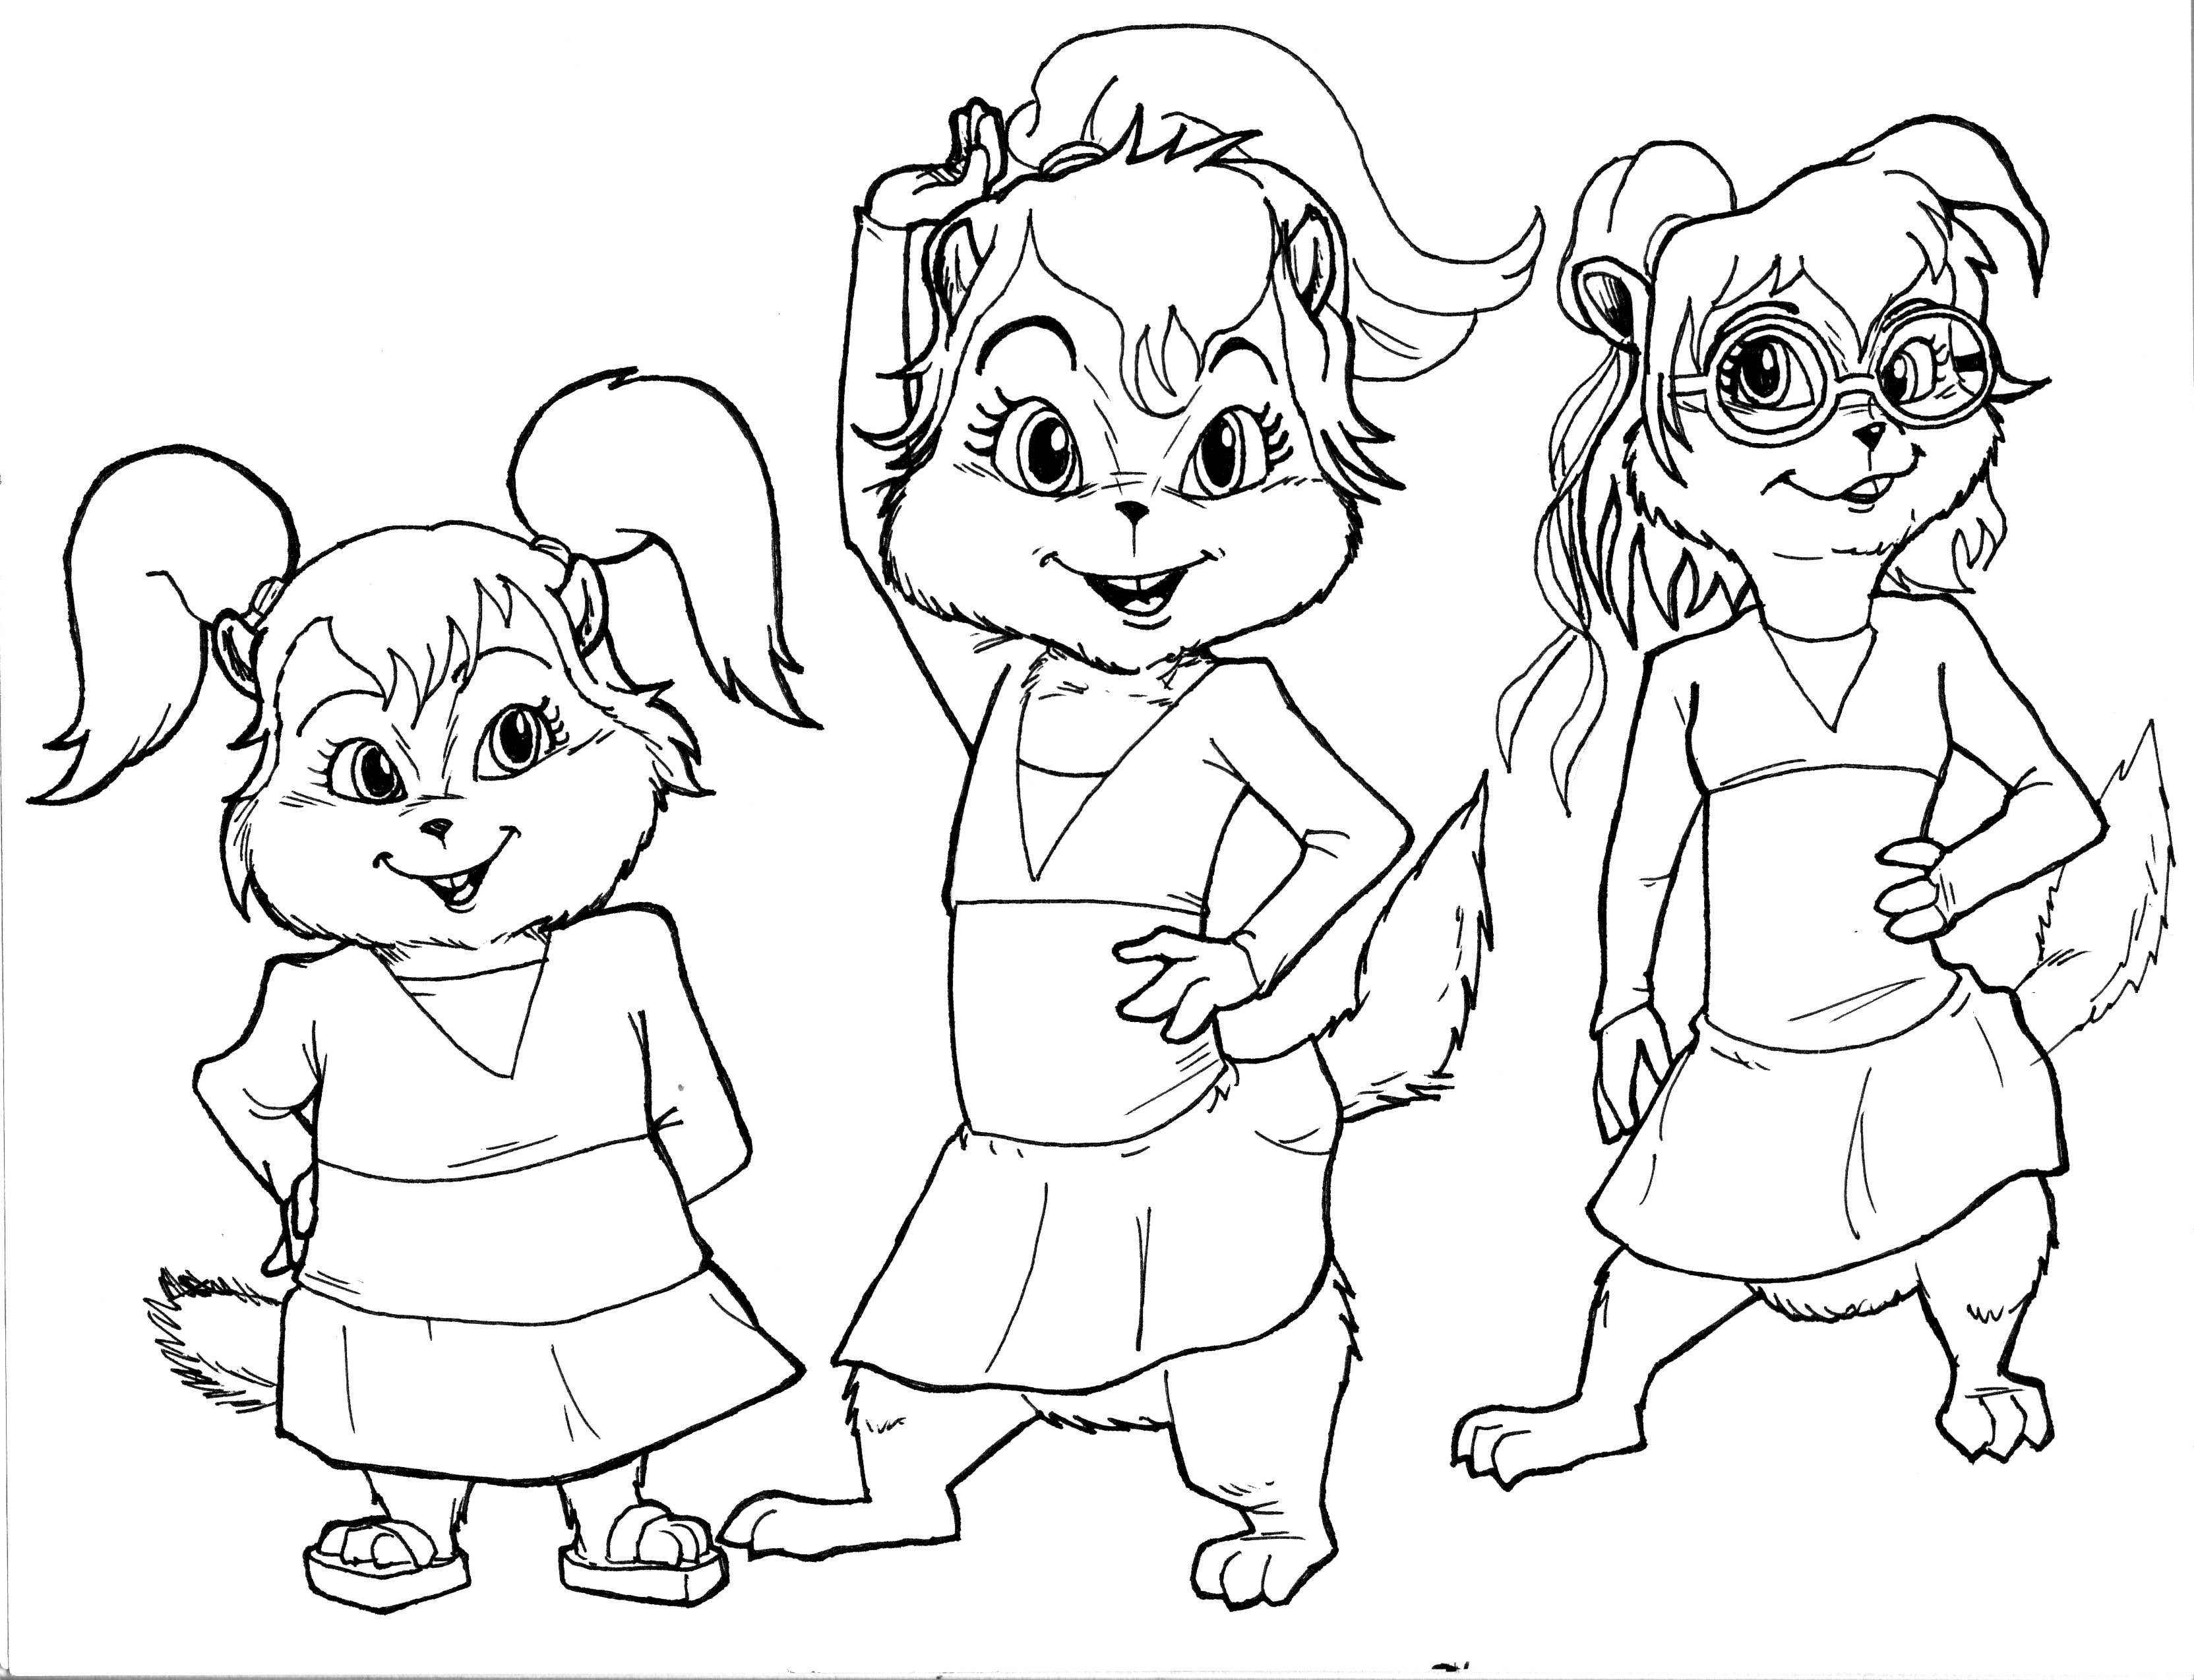 Chipmunks Drawing at GetDrawings.com | Free for personal use ...